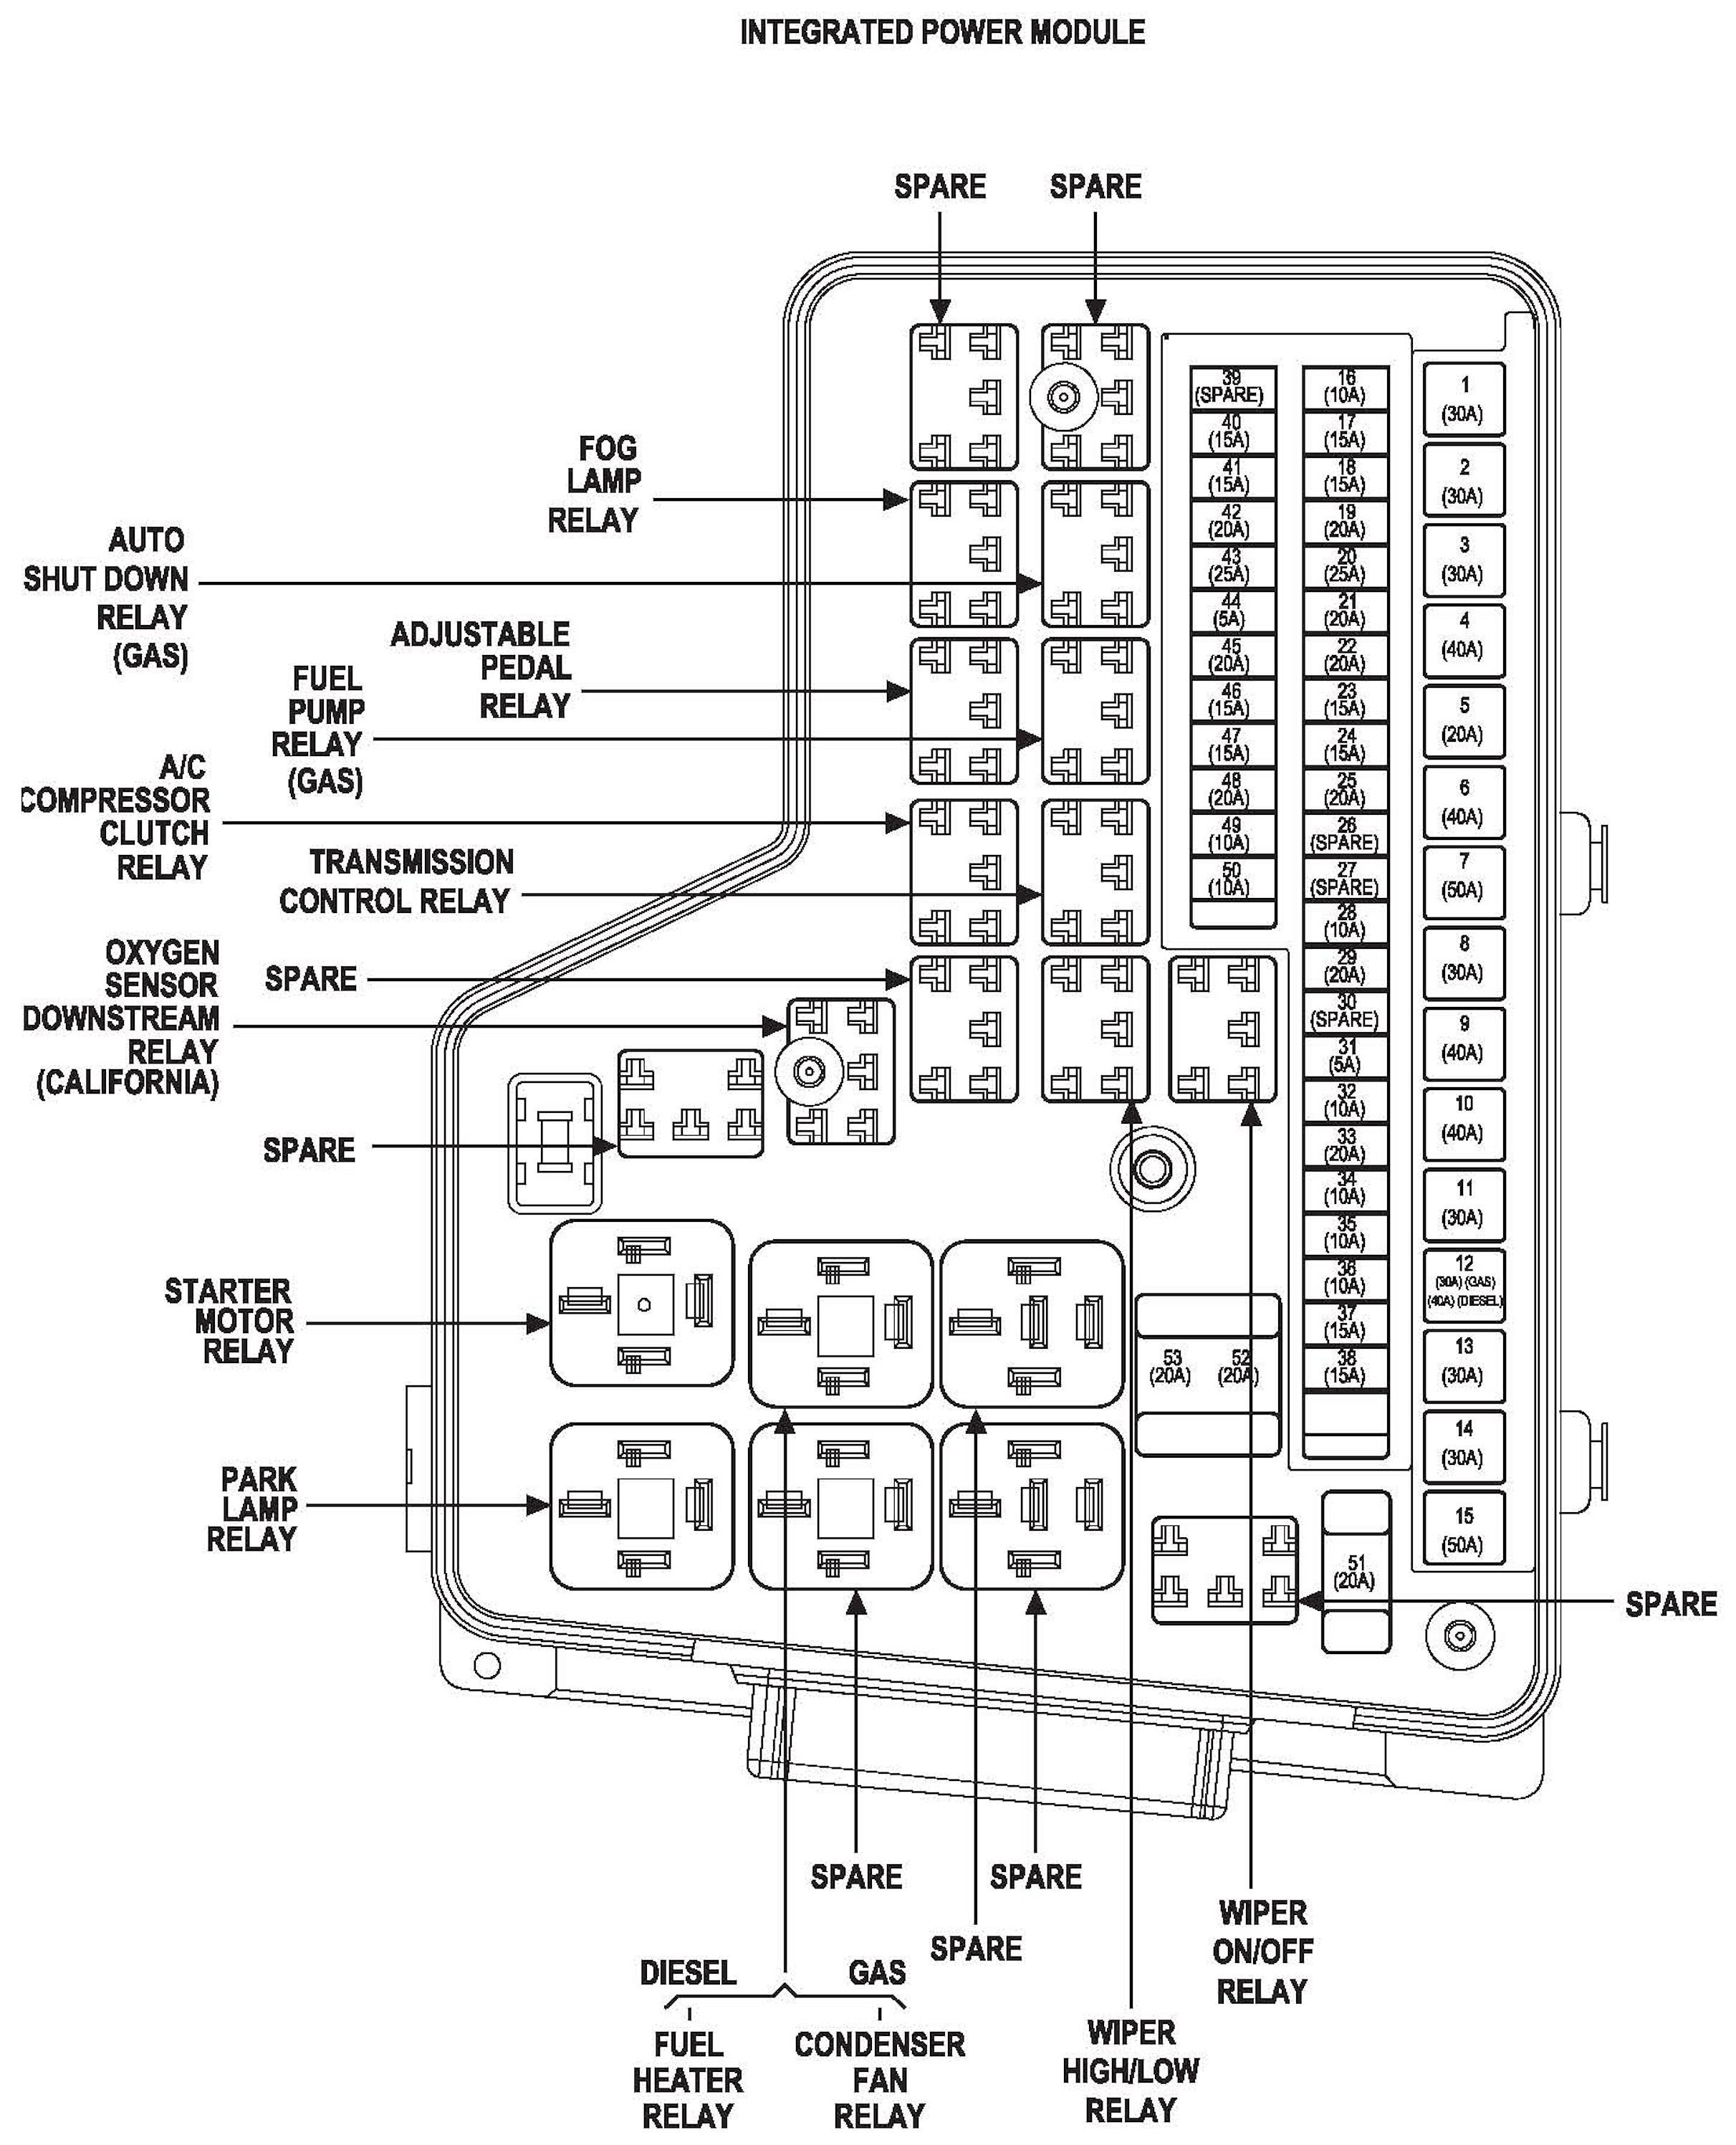 2004 Dodge Ram Fuse Diagram - Data Wiring Diagram Today - 2002 Dodge Ram 1500 Wiring Diagram